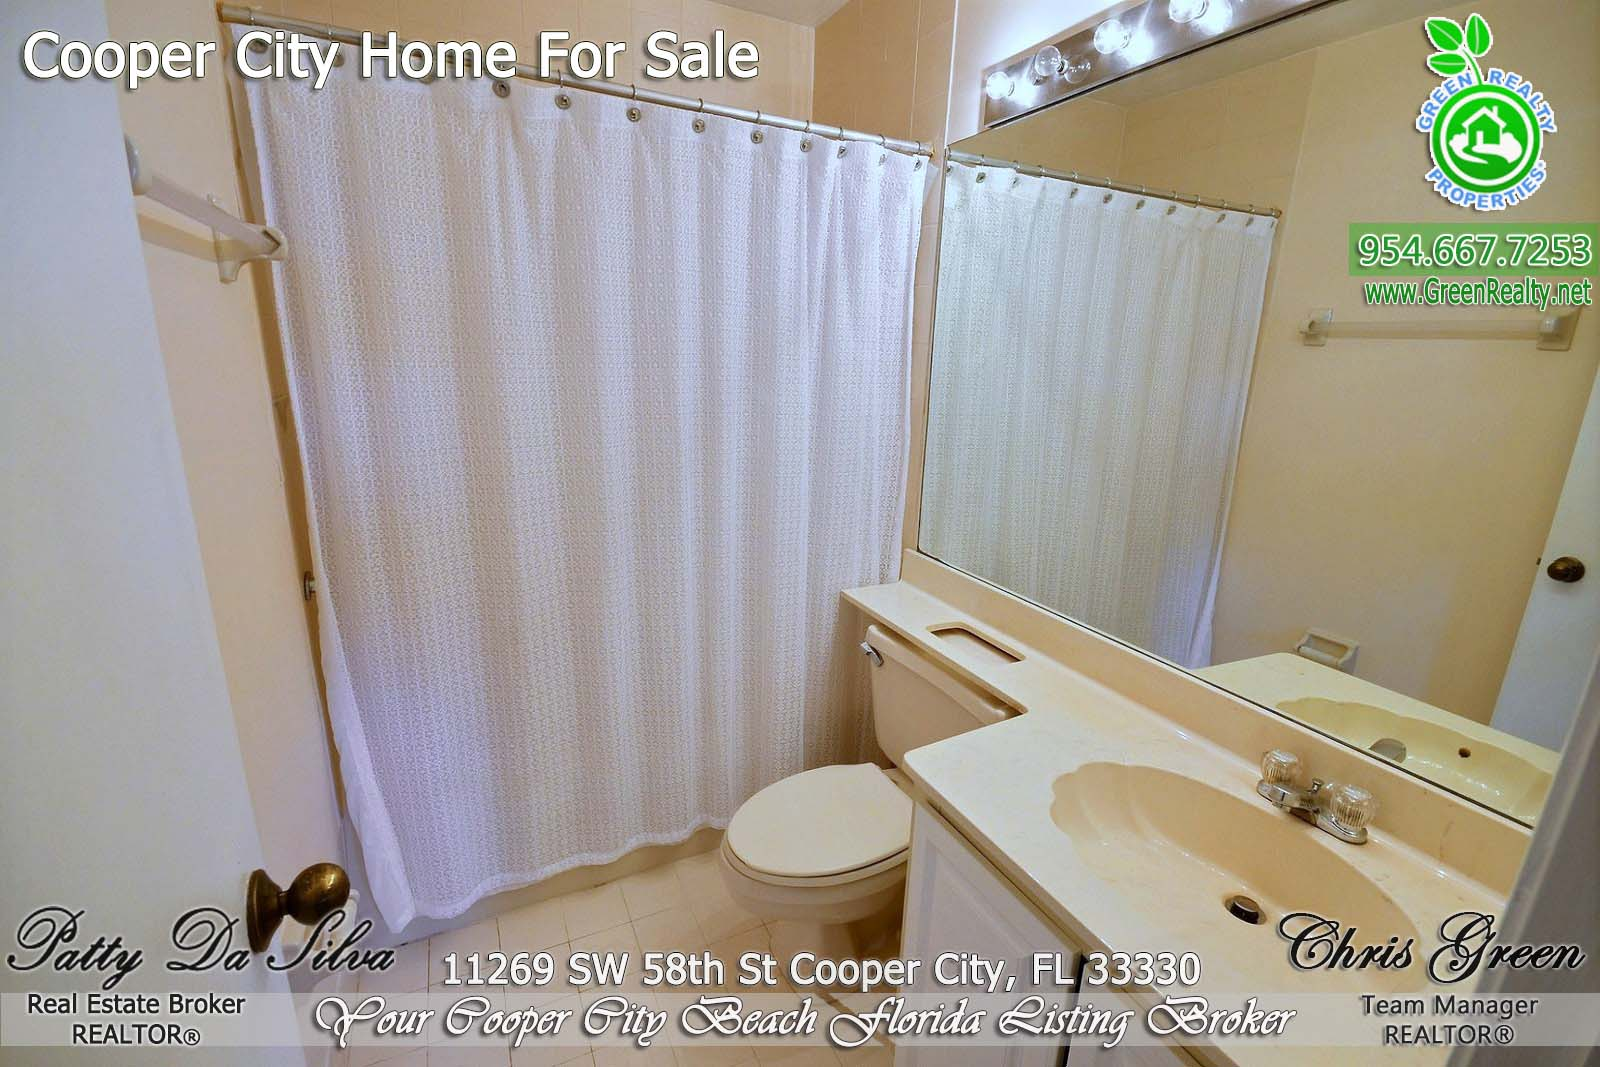 14 Cooper City Real Estate - Villas (21)